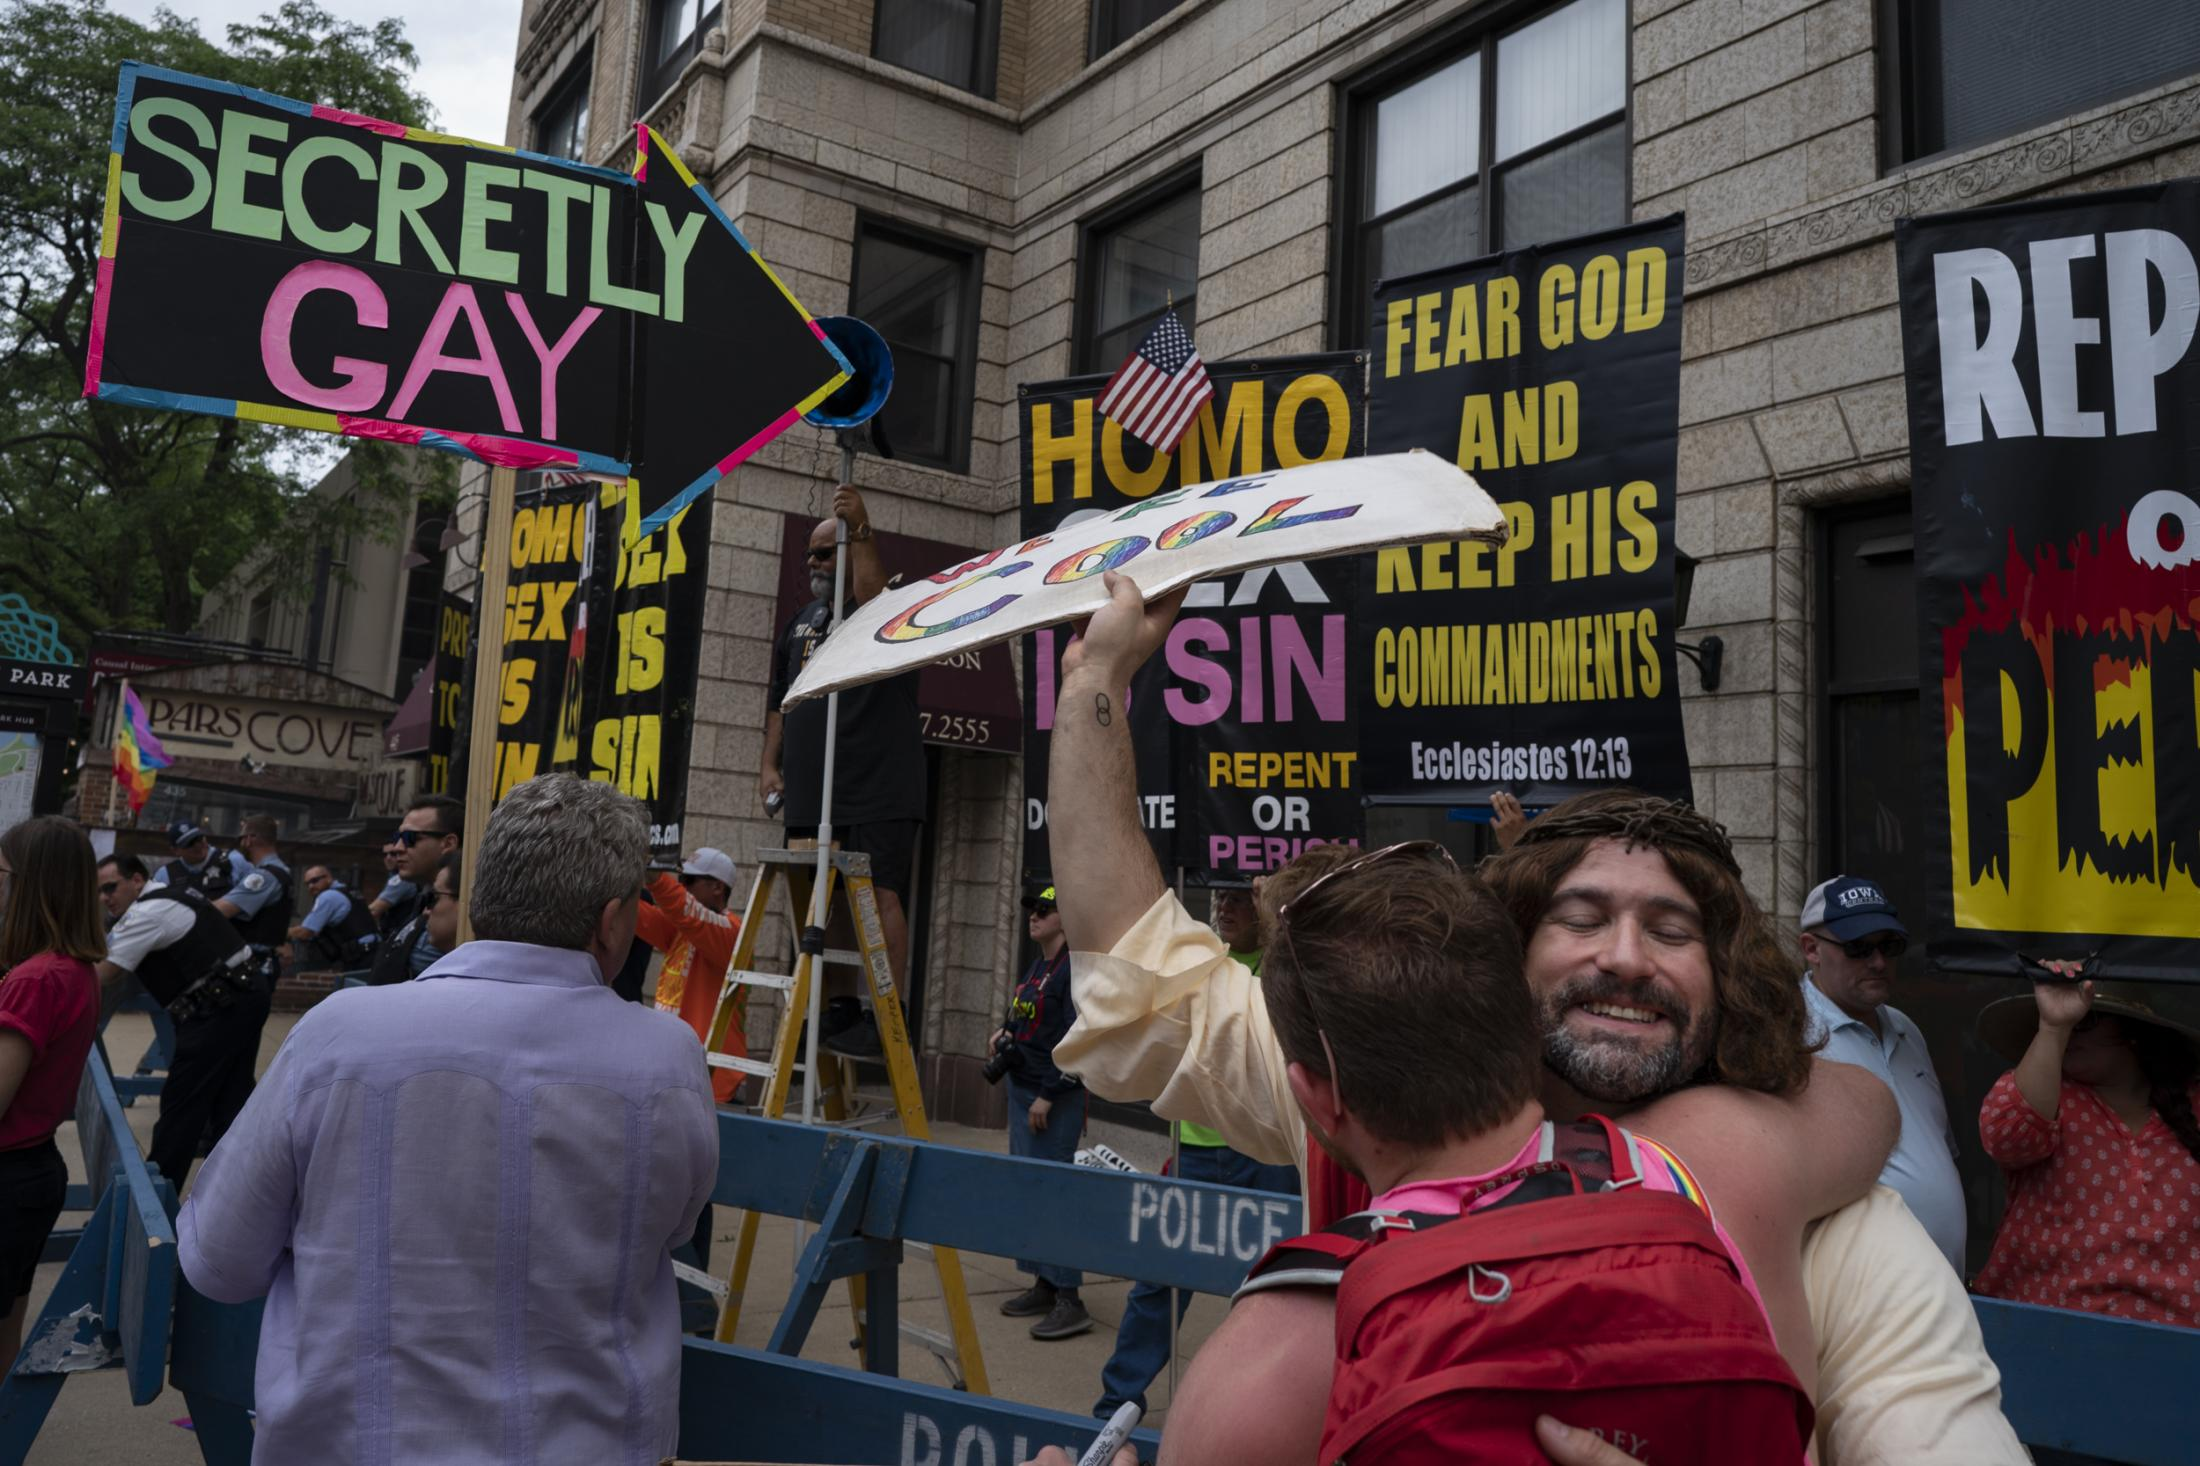 "Scott Whitehair, dressed as Jesus Christ, gives out free hugs to counter-protest a Christian hate group during Chicago's 50th Pride Parade on June 30, 2019. ""I showed up because it's a chance to make people laugh and smile when they walk by instead of hearing this terrible stuff,"" Whitehair said."